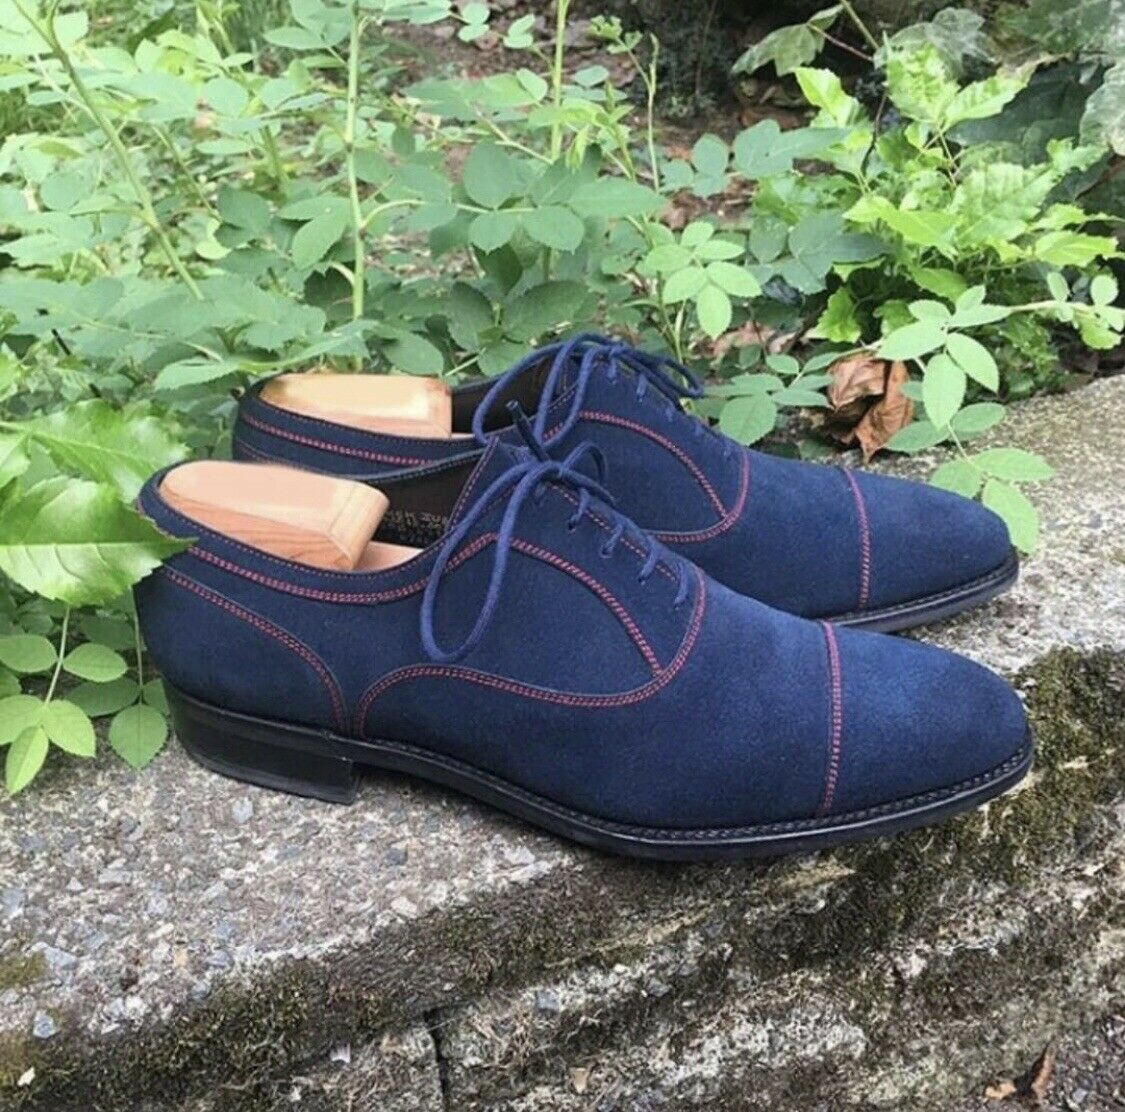 Handmade Men's Blue Suede Lace Up Dress/Formal Oxford Shoes